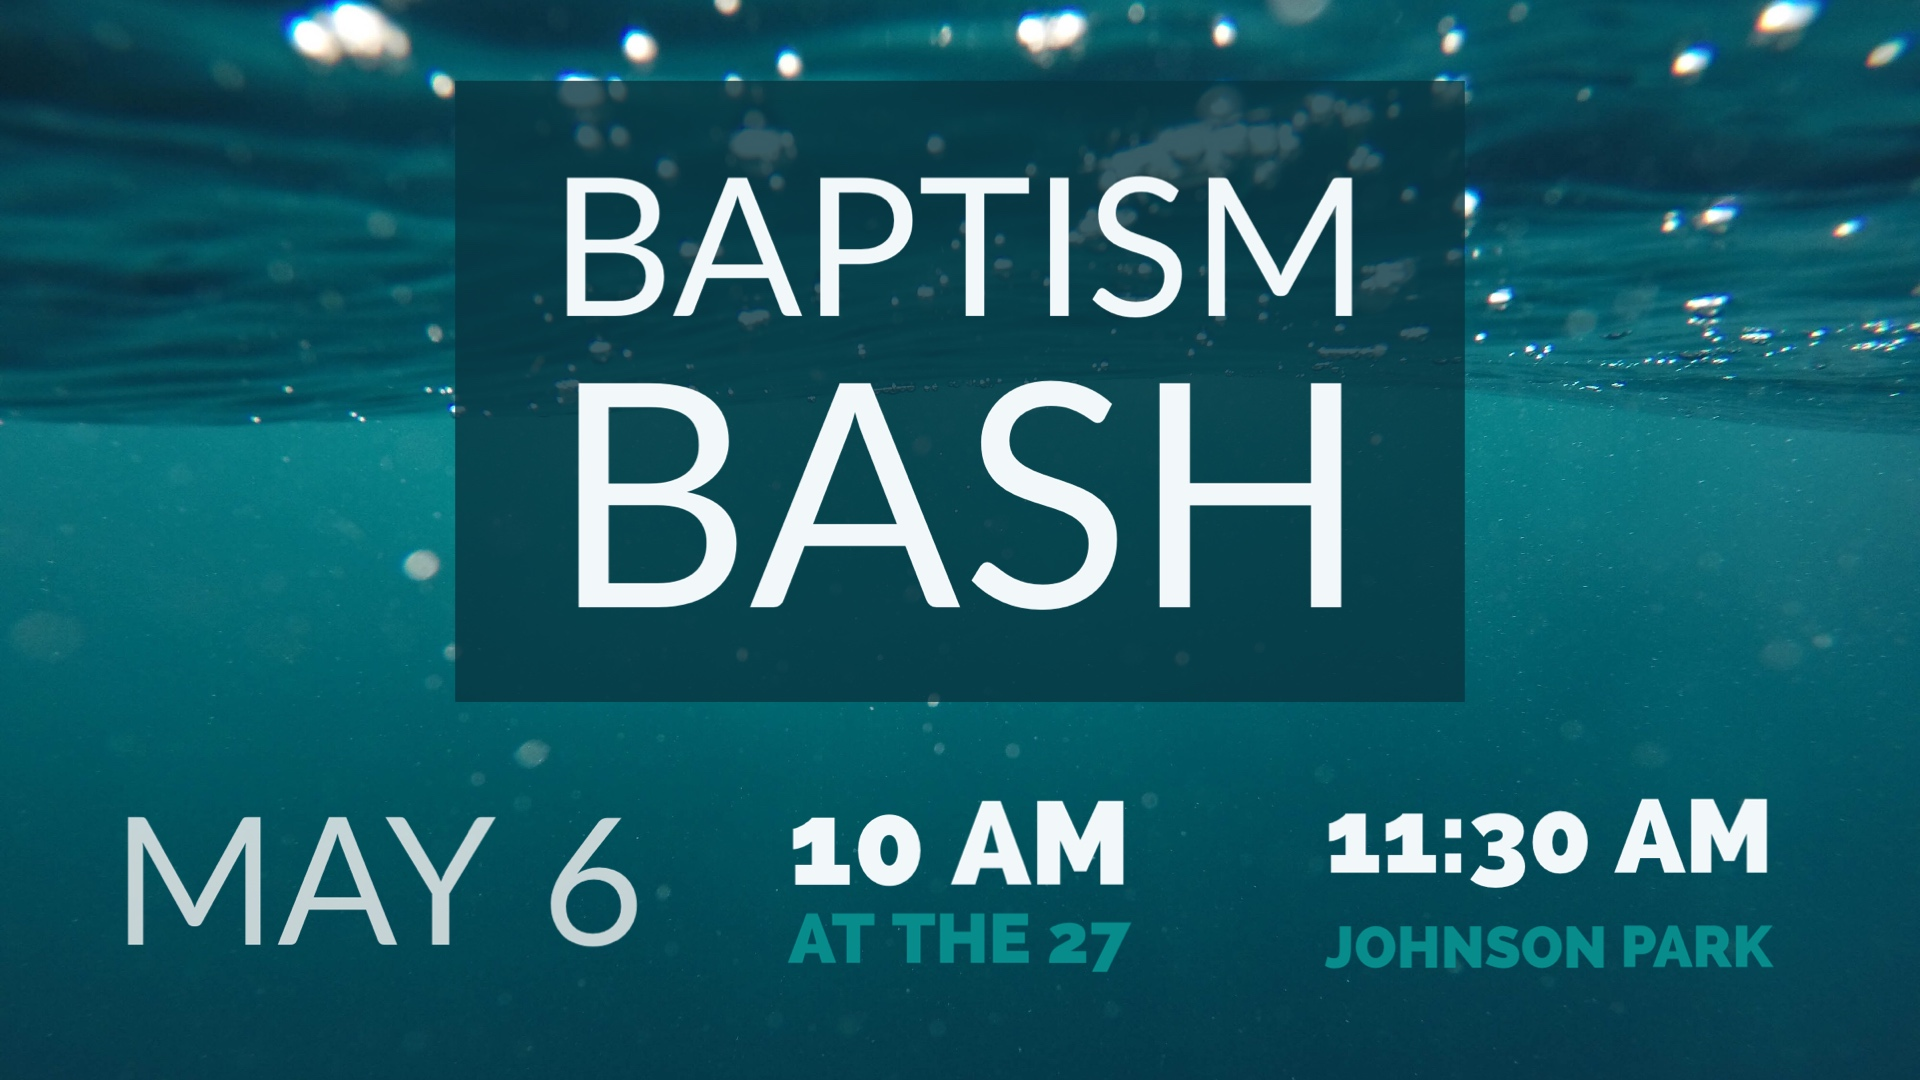 baptism bash may 6 2018 image